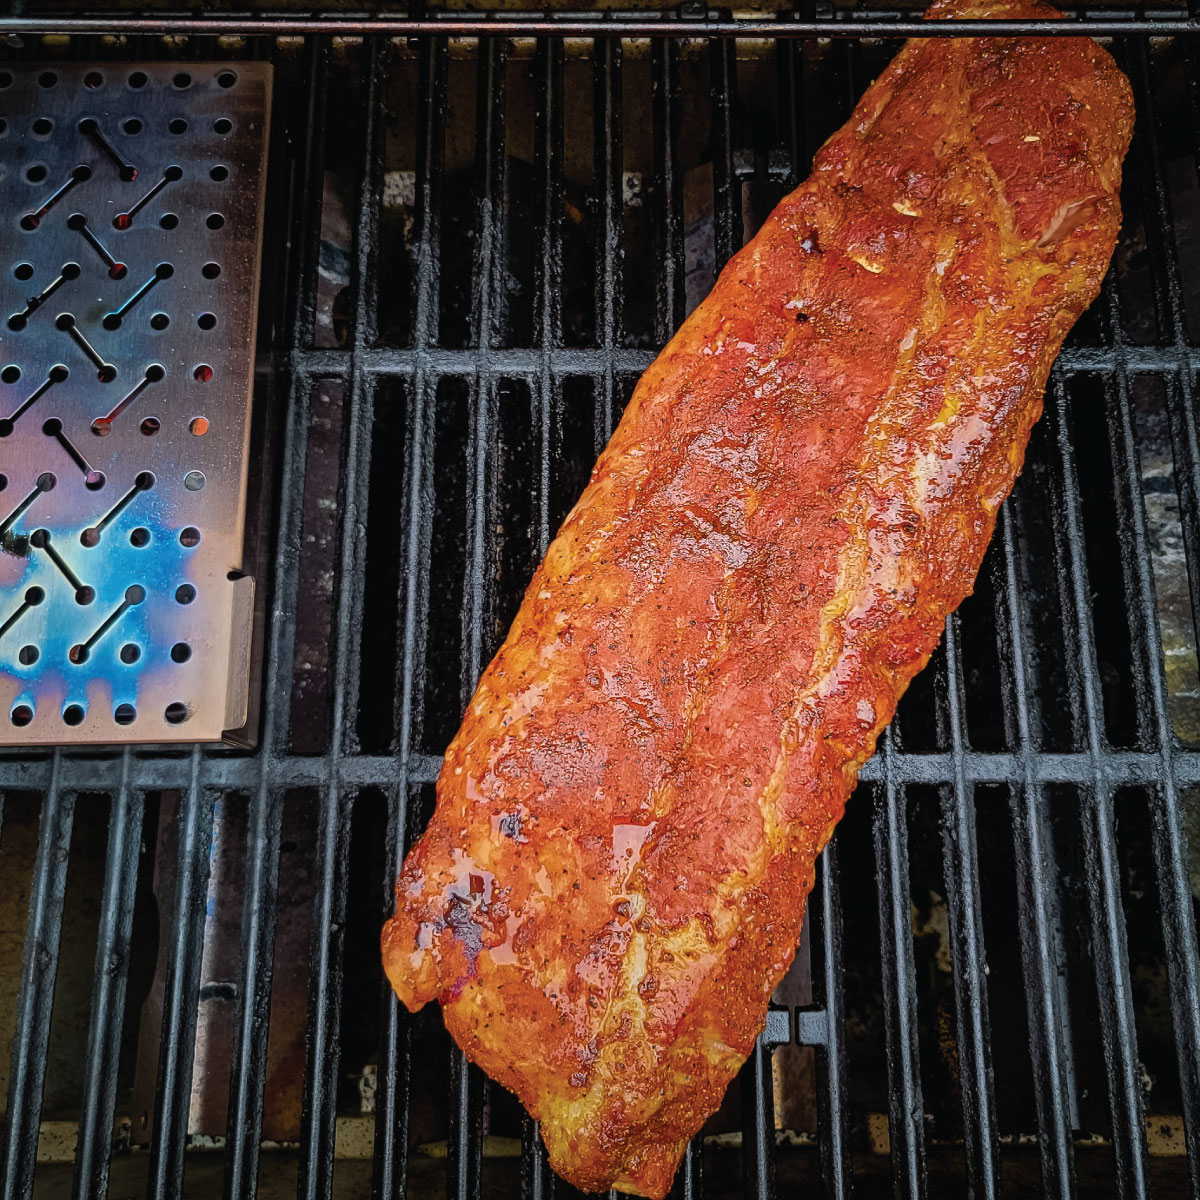 Ribs on a grill cooking with a smoke box next to them